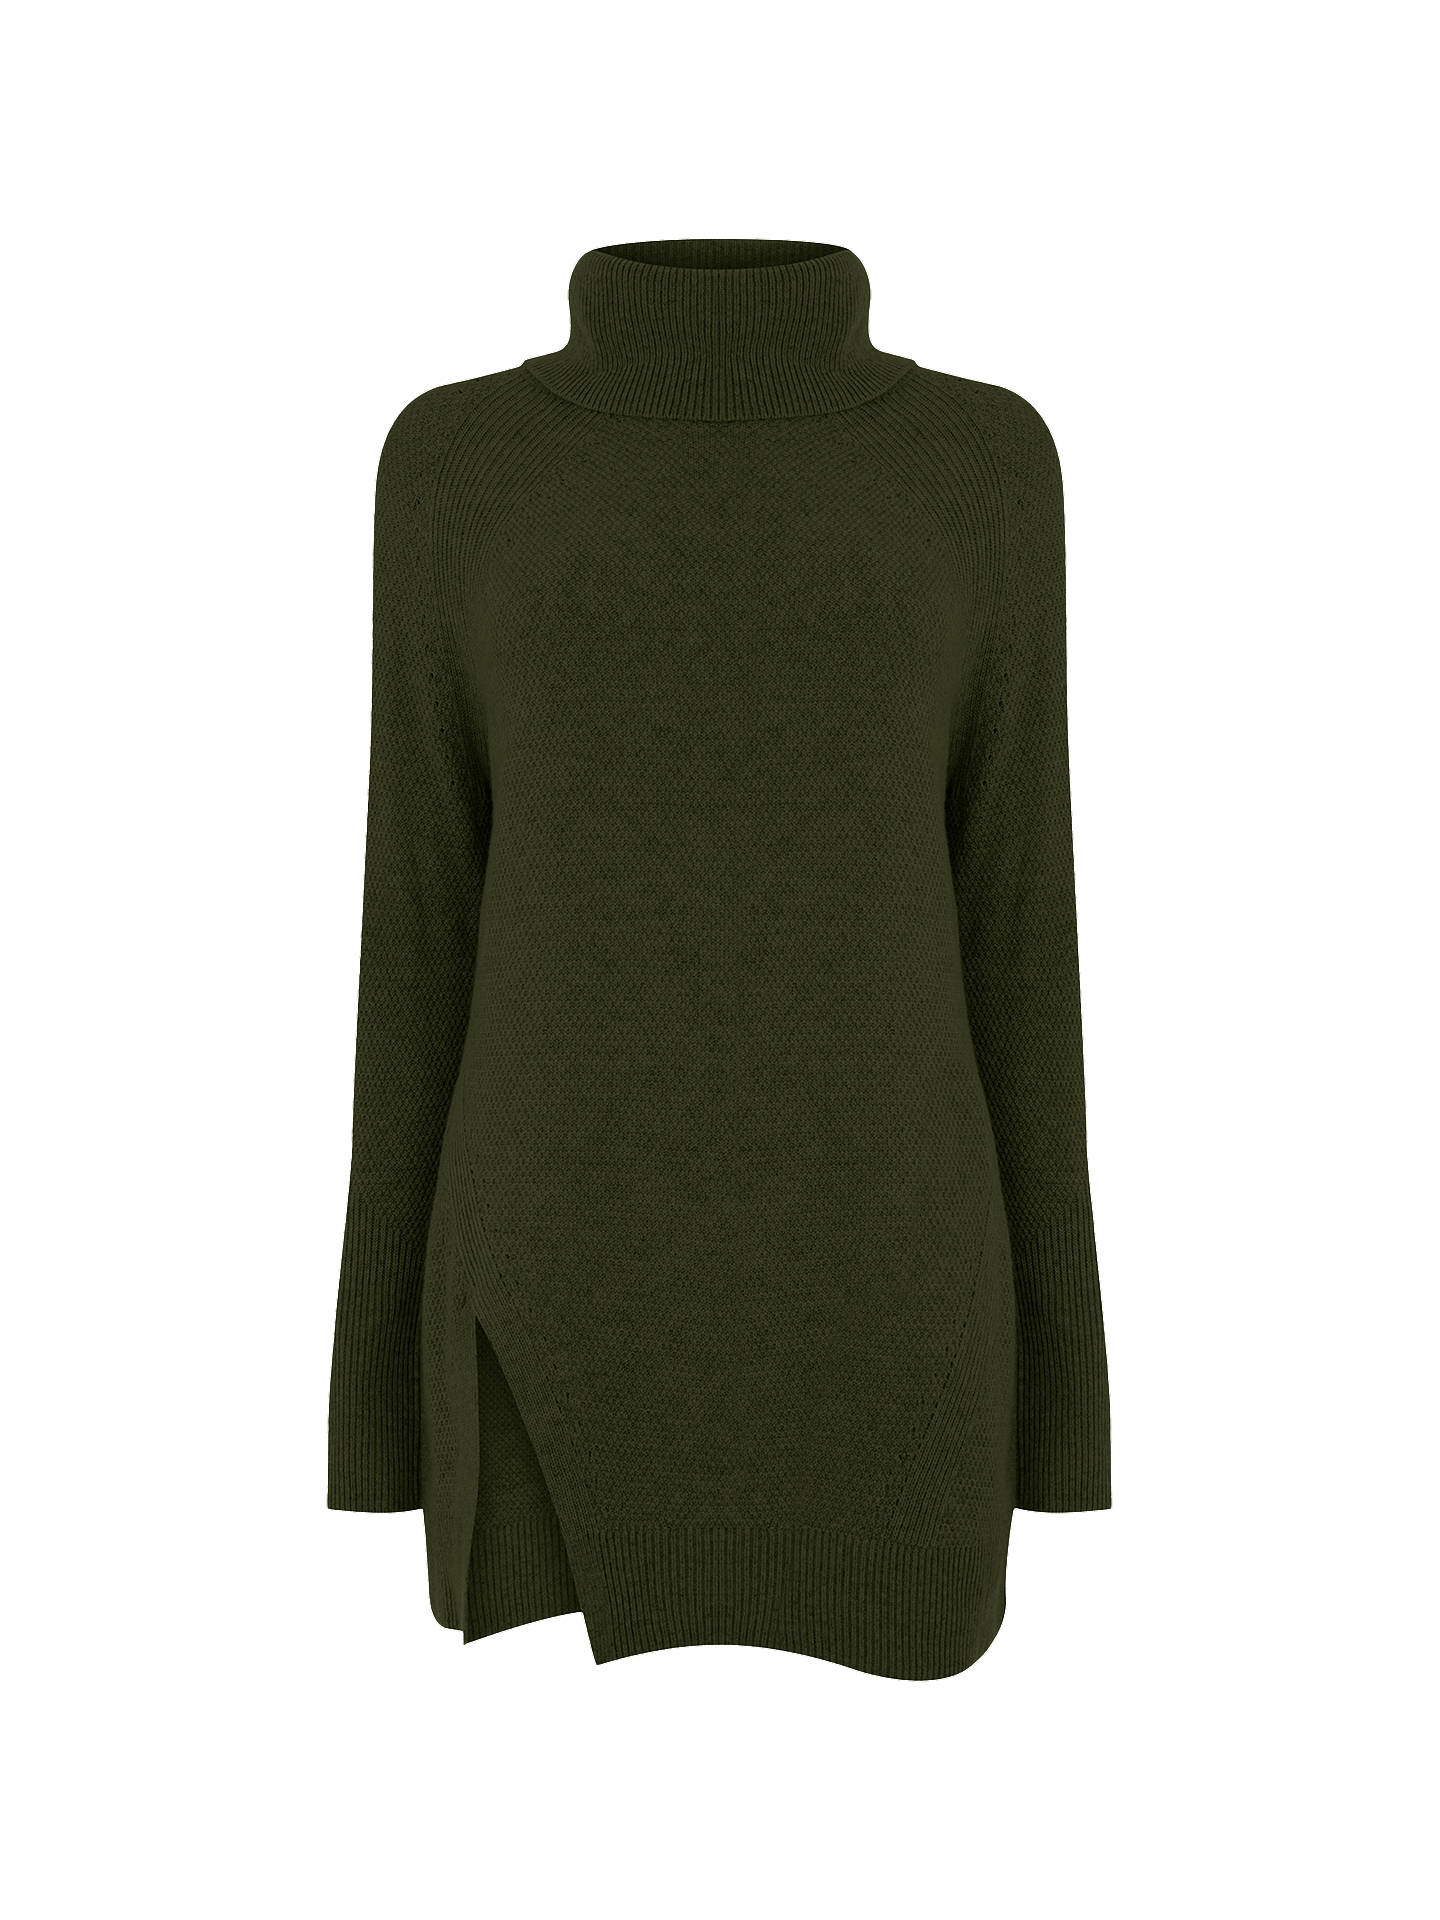 BuyWarehouse Stitchy Cowl Neck Jumper, Khaki, 6 Online at johnlewis.com